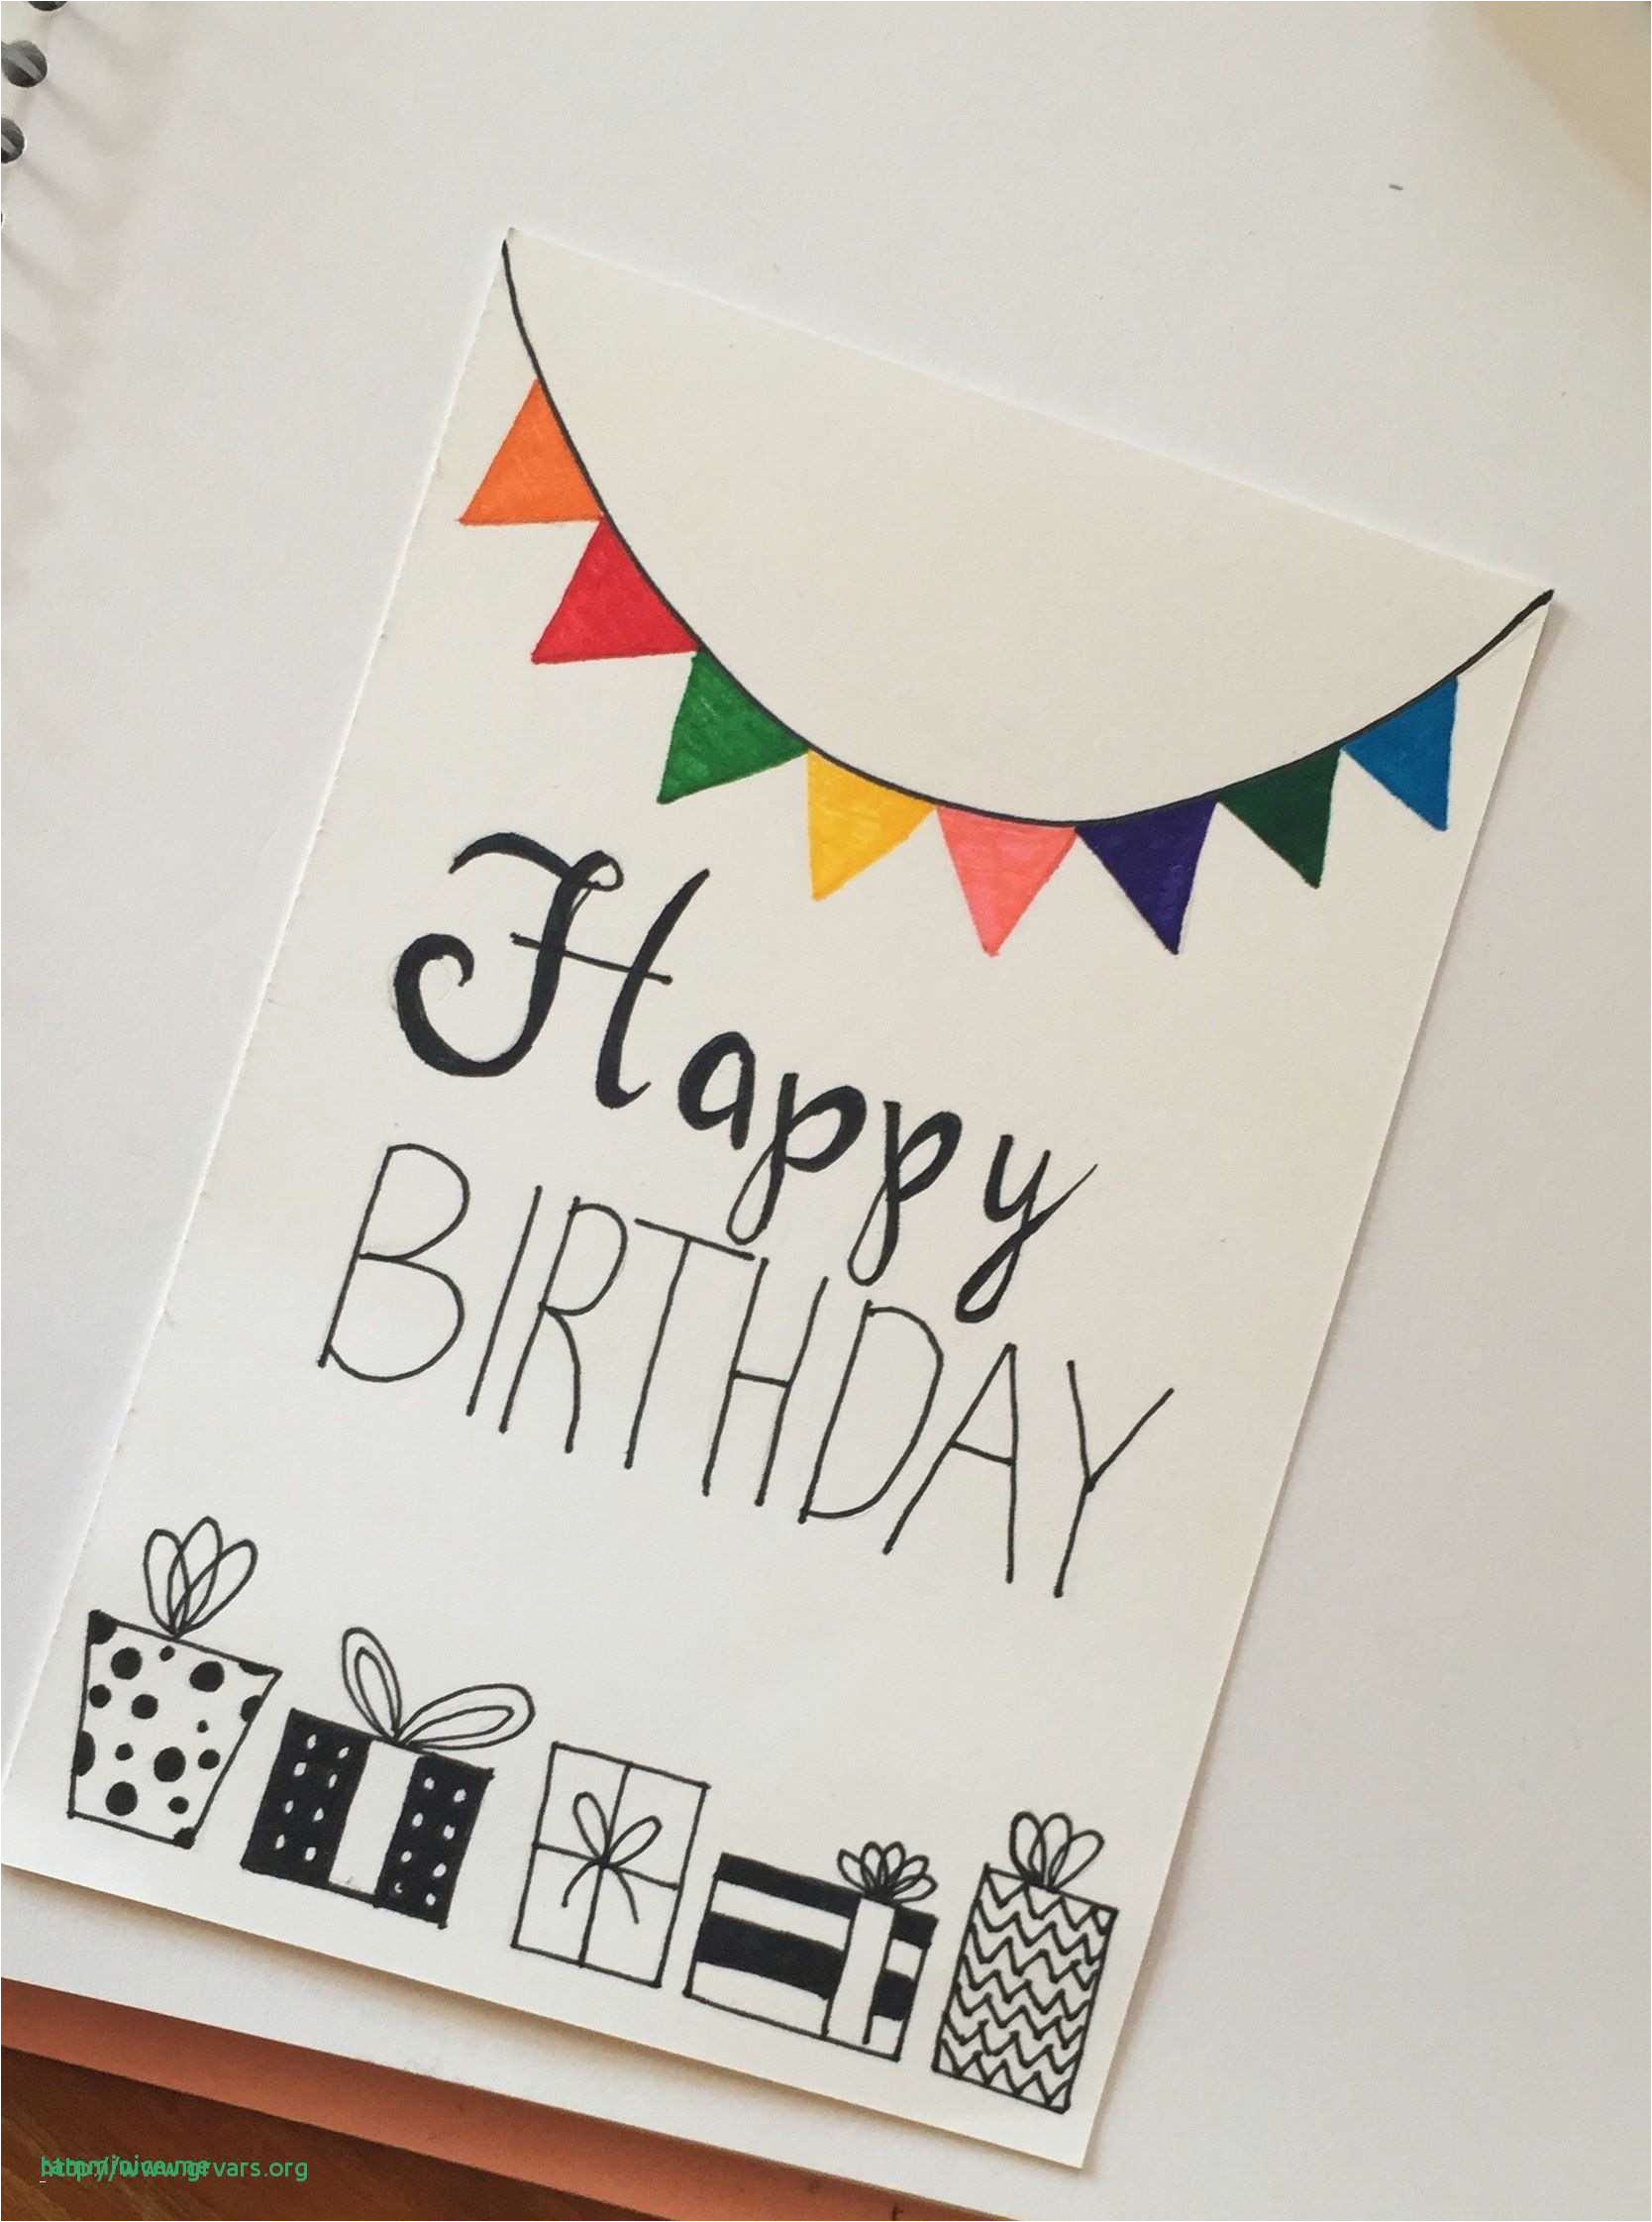 35 Trends For Handmade Friend Birthday Card Images